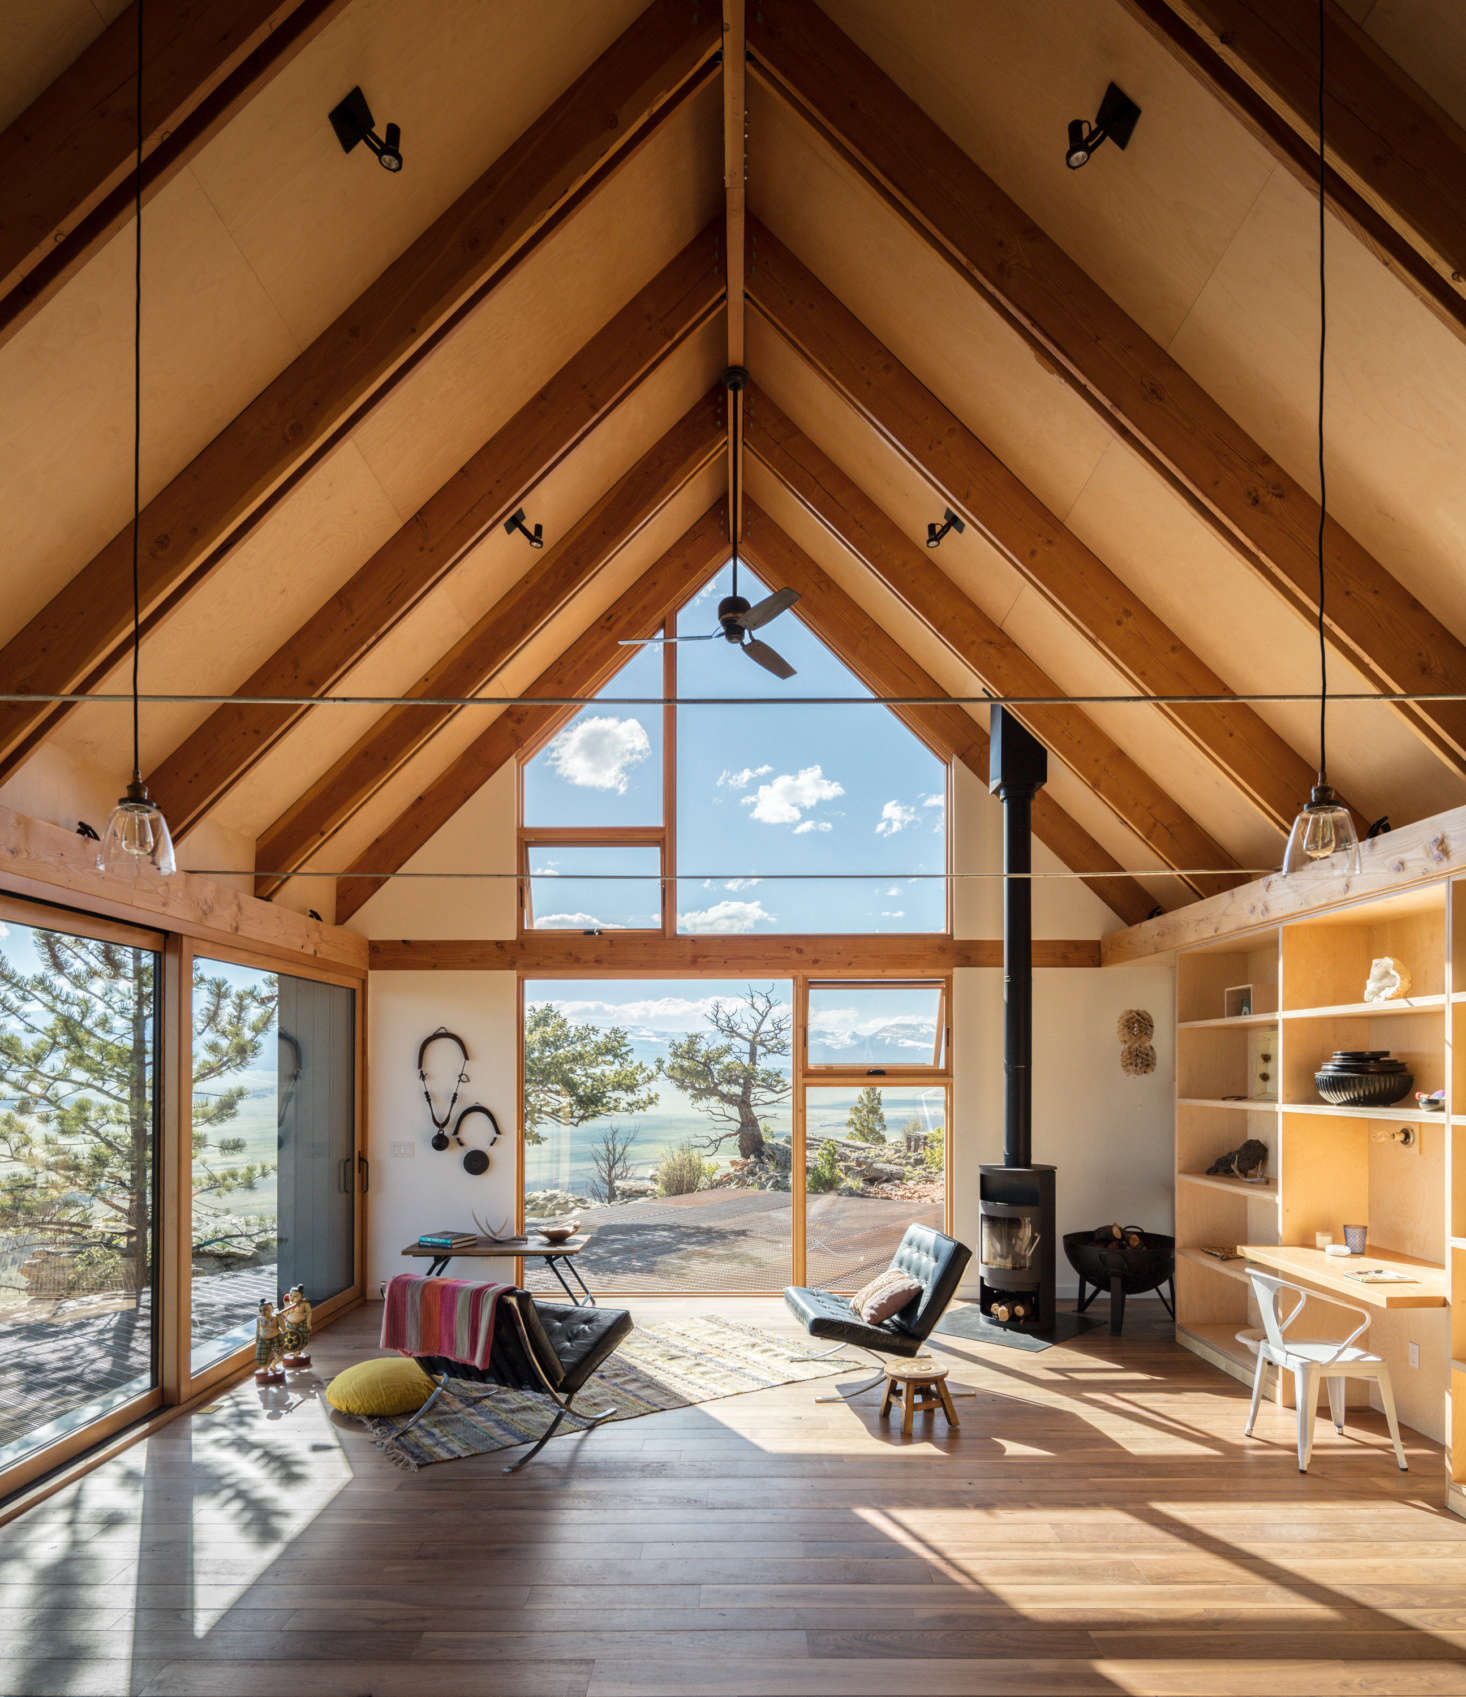 """Del Gaudio lined the 1,300-square-foot interior with clear-sealed Baltic birch plywood and used Douglas fir for the rafters and other exposed framing. The rustic-grade walnut floor has radiant heating set in a concrete slab, and there's also a Rais wood stove powerful enough to heat the entire cabin: """"when the stove is cooking, a thermostat shuts off the radiant heating,"""" says del Gaudio."""